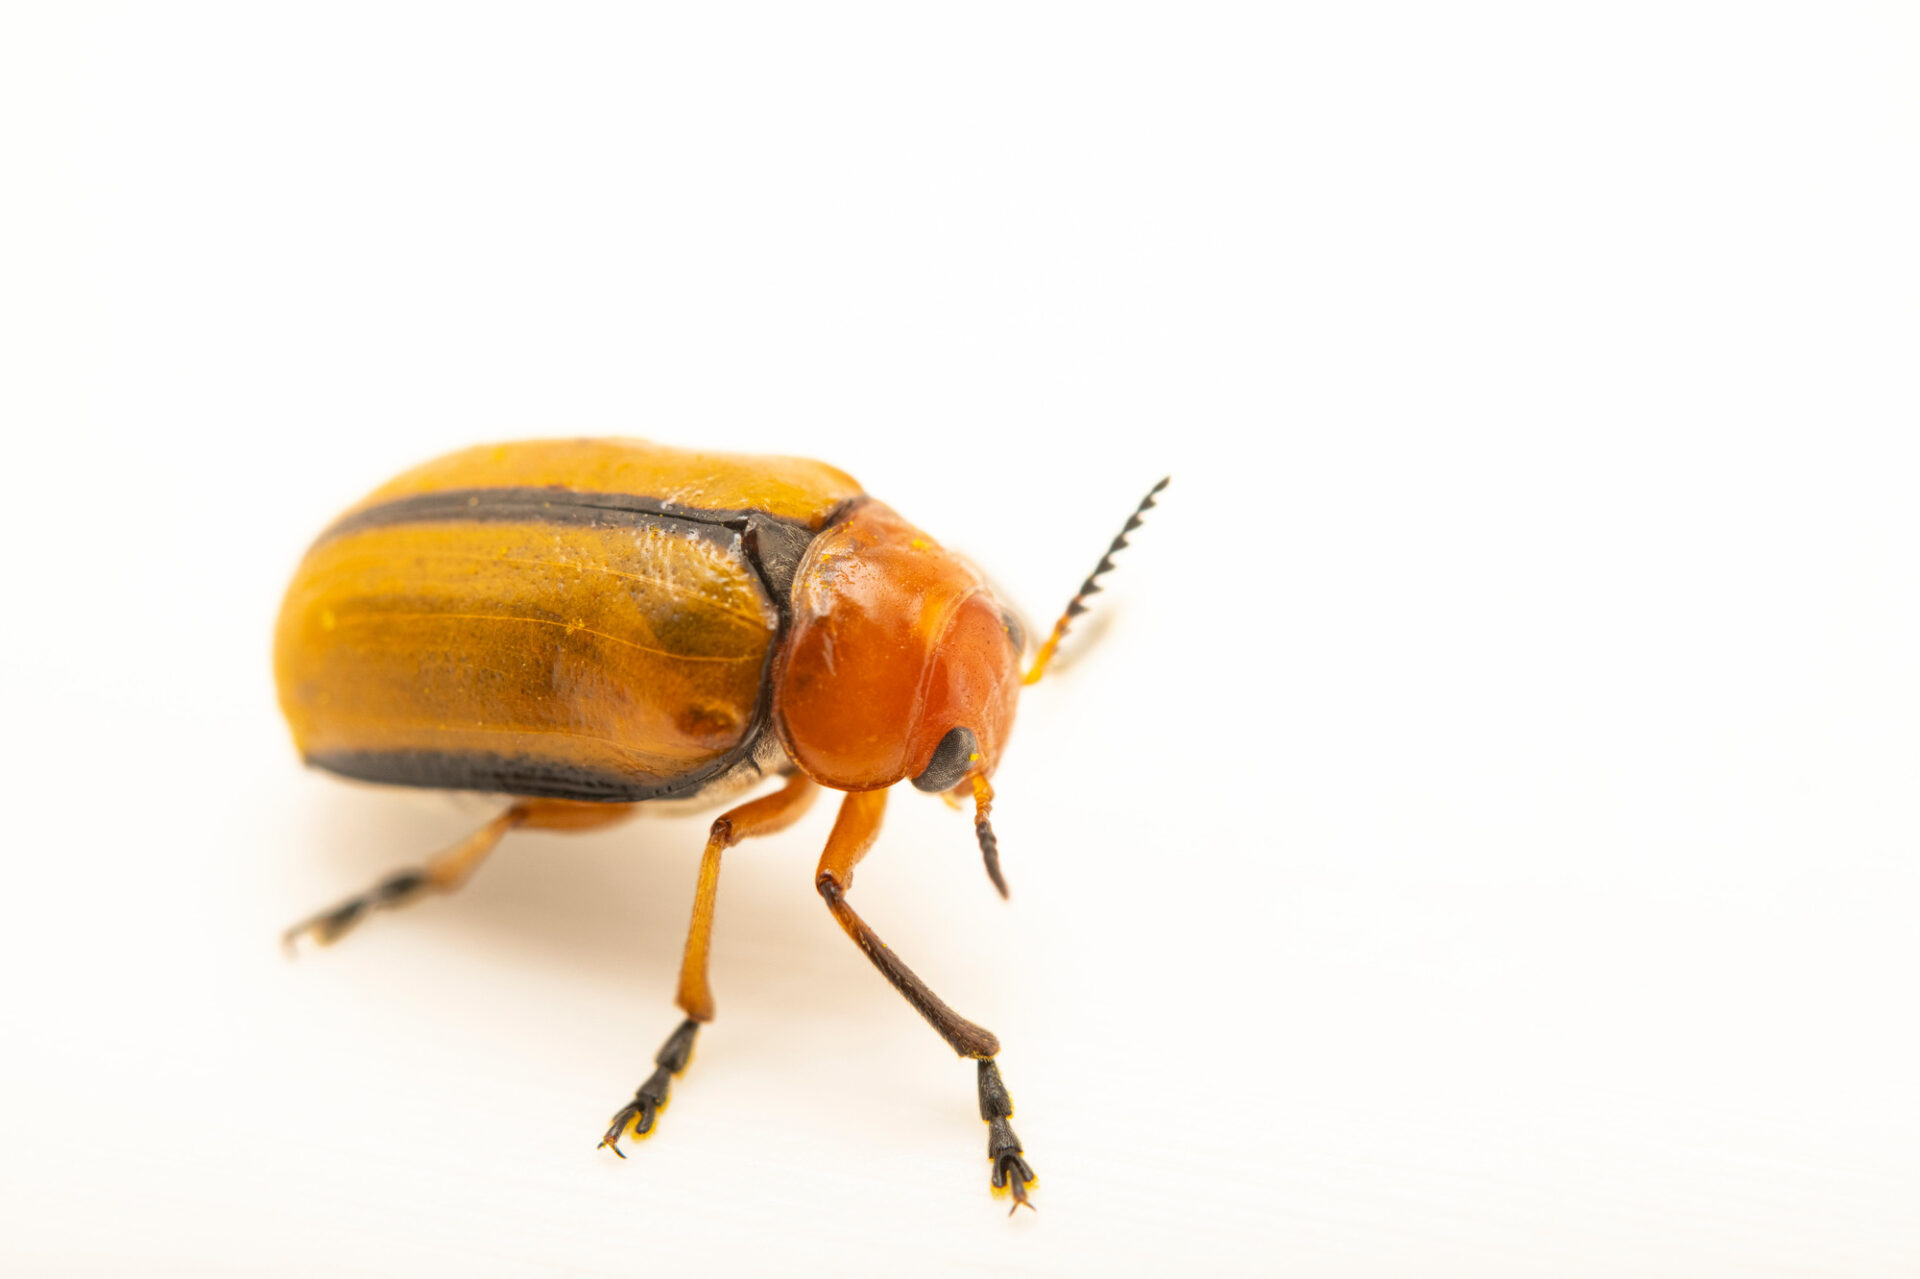 Photo: A clay-colored leaf beetle (Anomoea laticlavia) photographed at Spring Creek Prairie Audubon Center near Denton, NE. This animal was originally collected from Bobcat Prairie near Denton, NE.